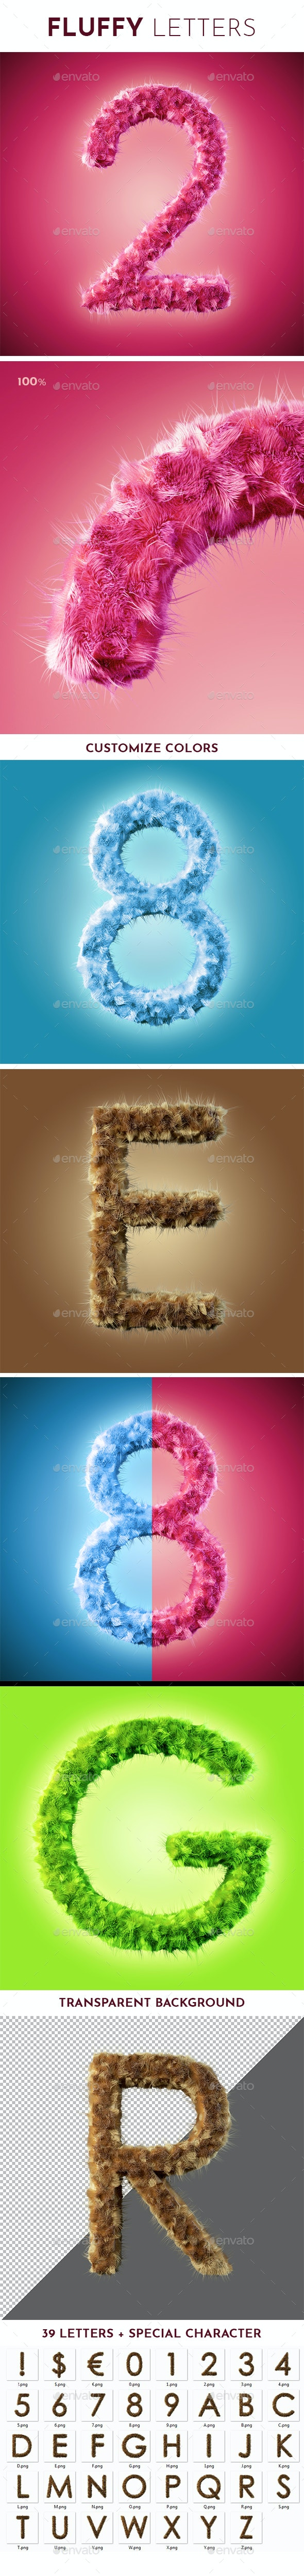 Fluffy Letters - Text 3D Renders